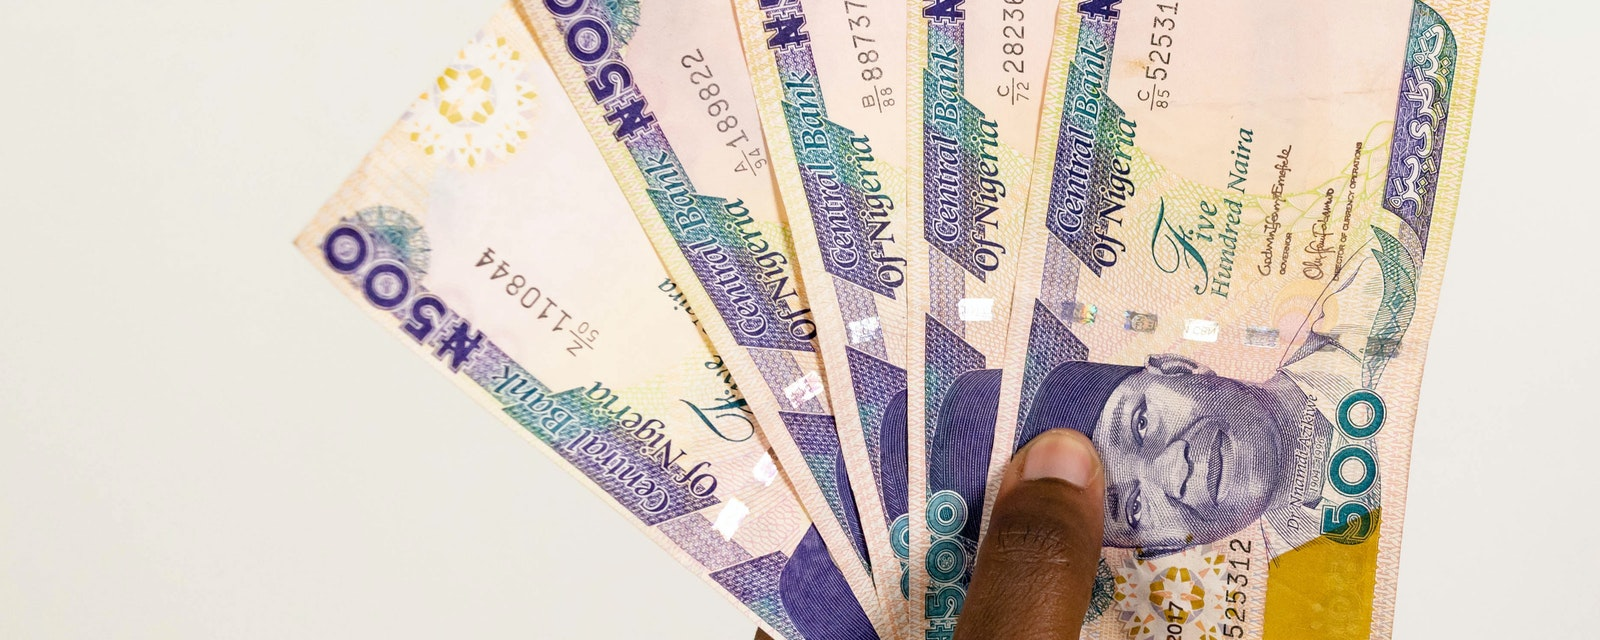 African hand holding Nigerian Naira notes spread